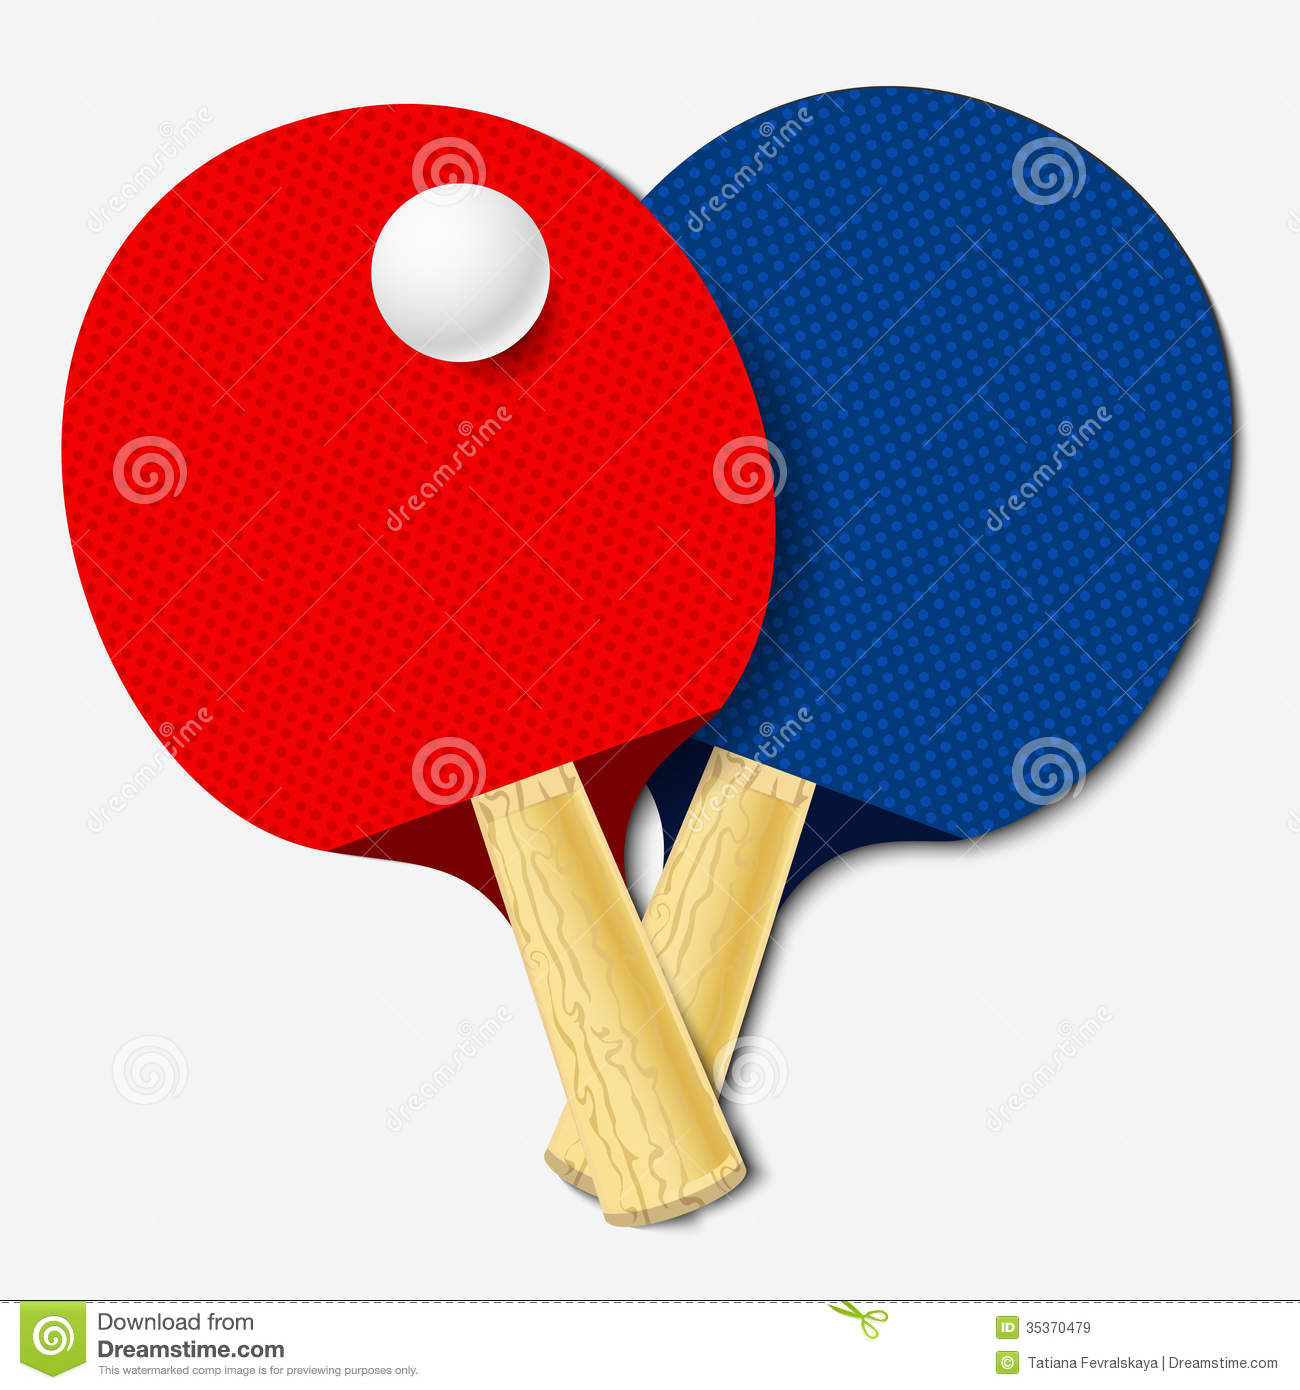 how to play table tennis better video